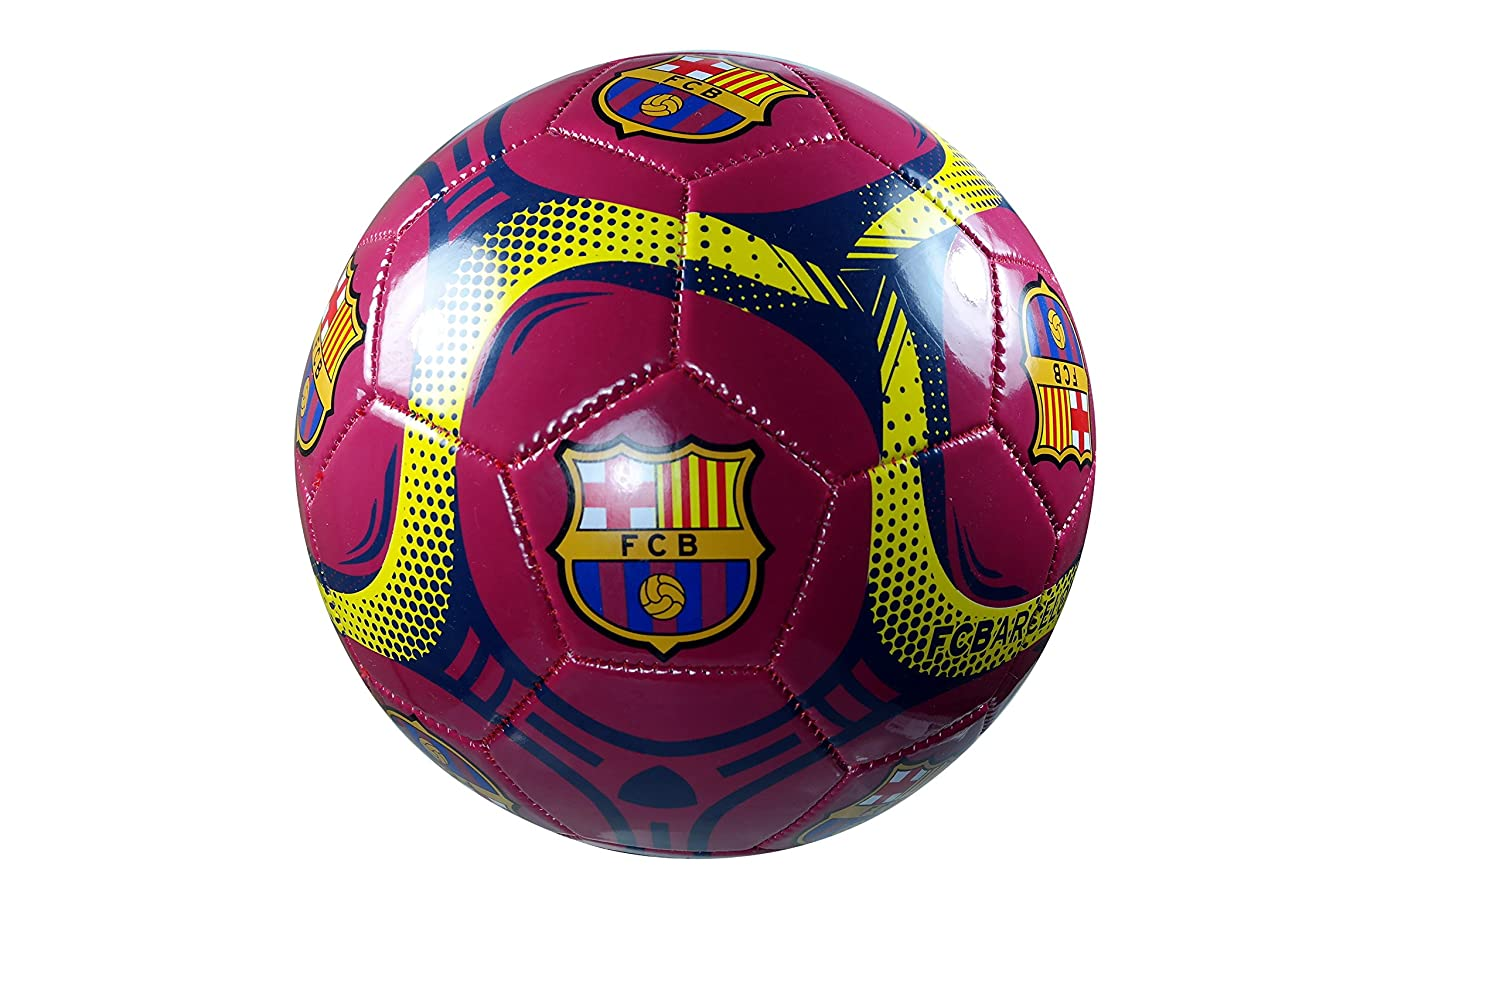 FC Barcelona Authentic Official Licensedサッカーボールサイズ5 – 01 – 8 B076V6HQB1